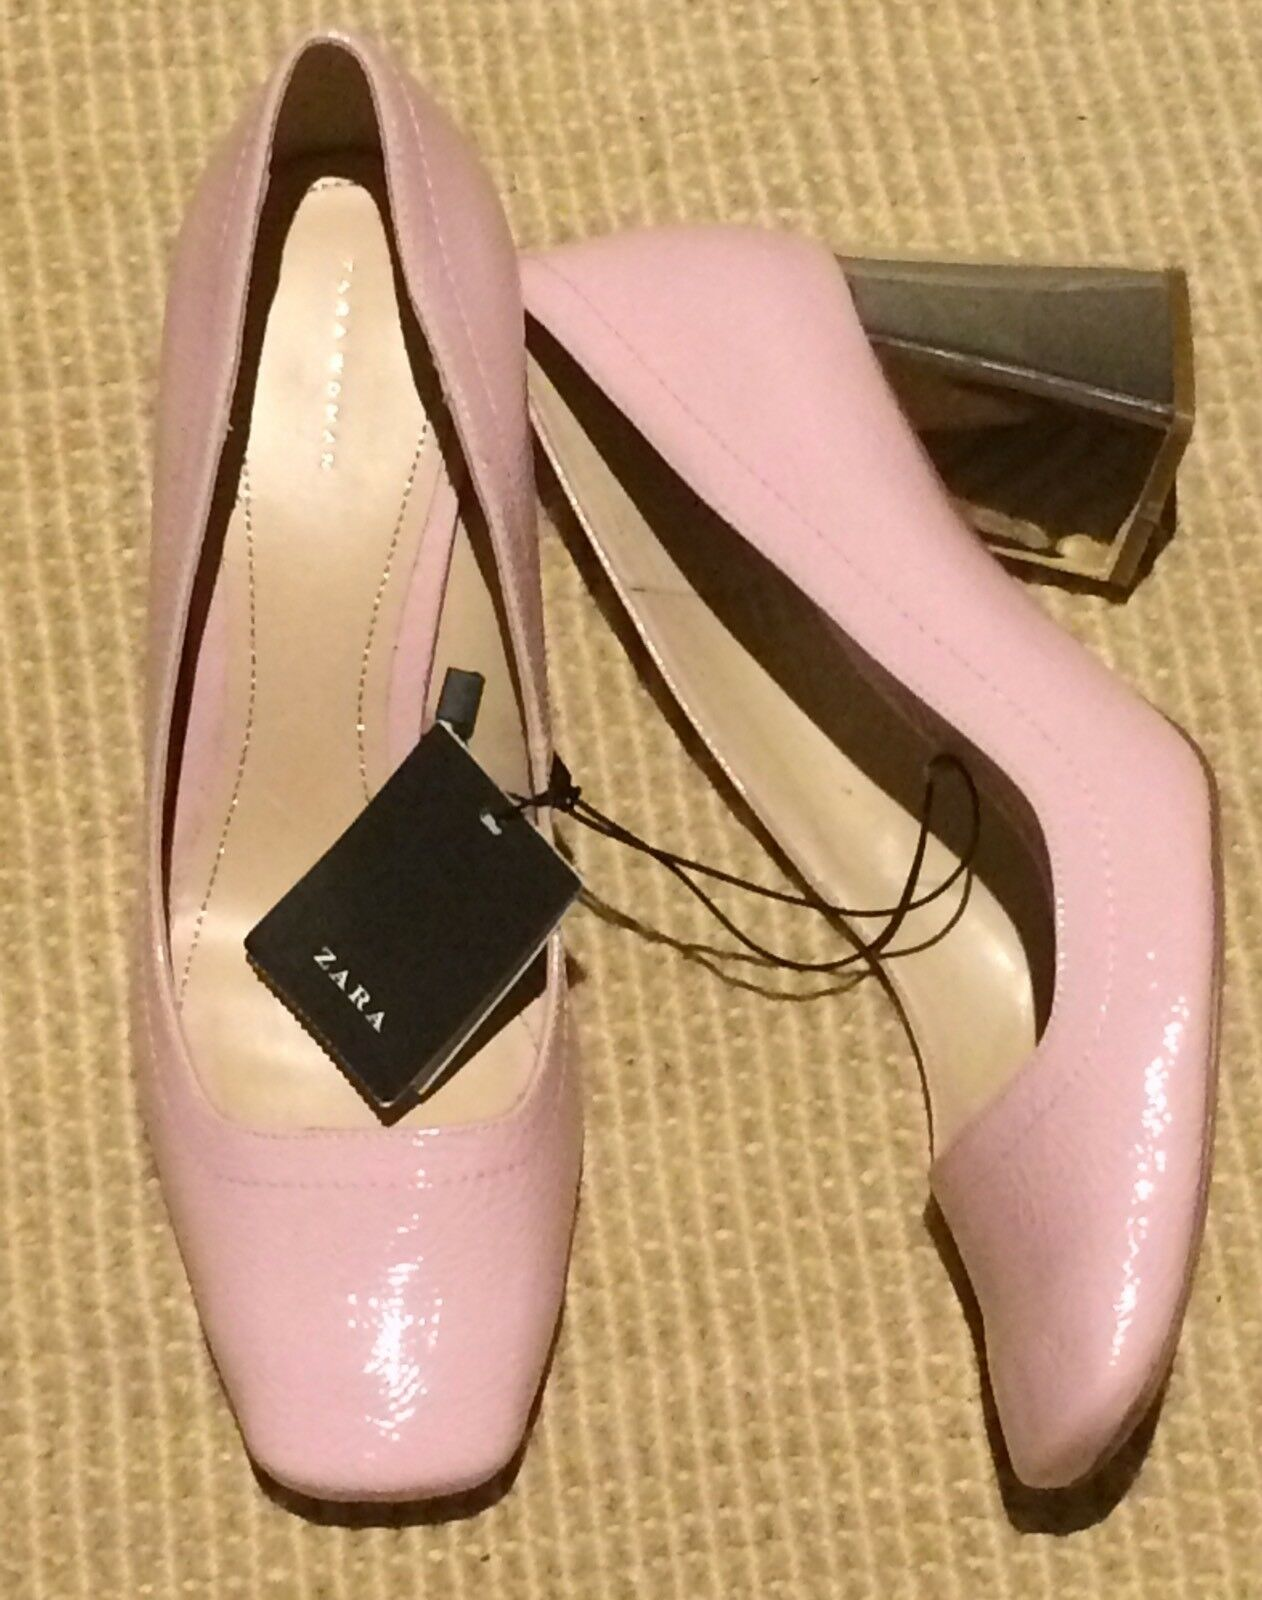 BNWT Zara Pink Patent Leather Silver heeled shoes Size 40 7